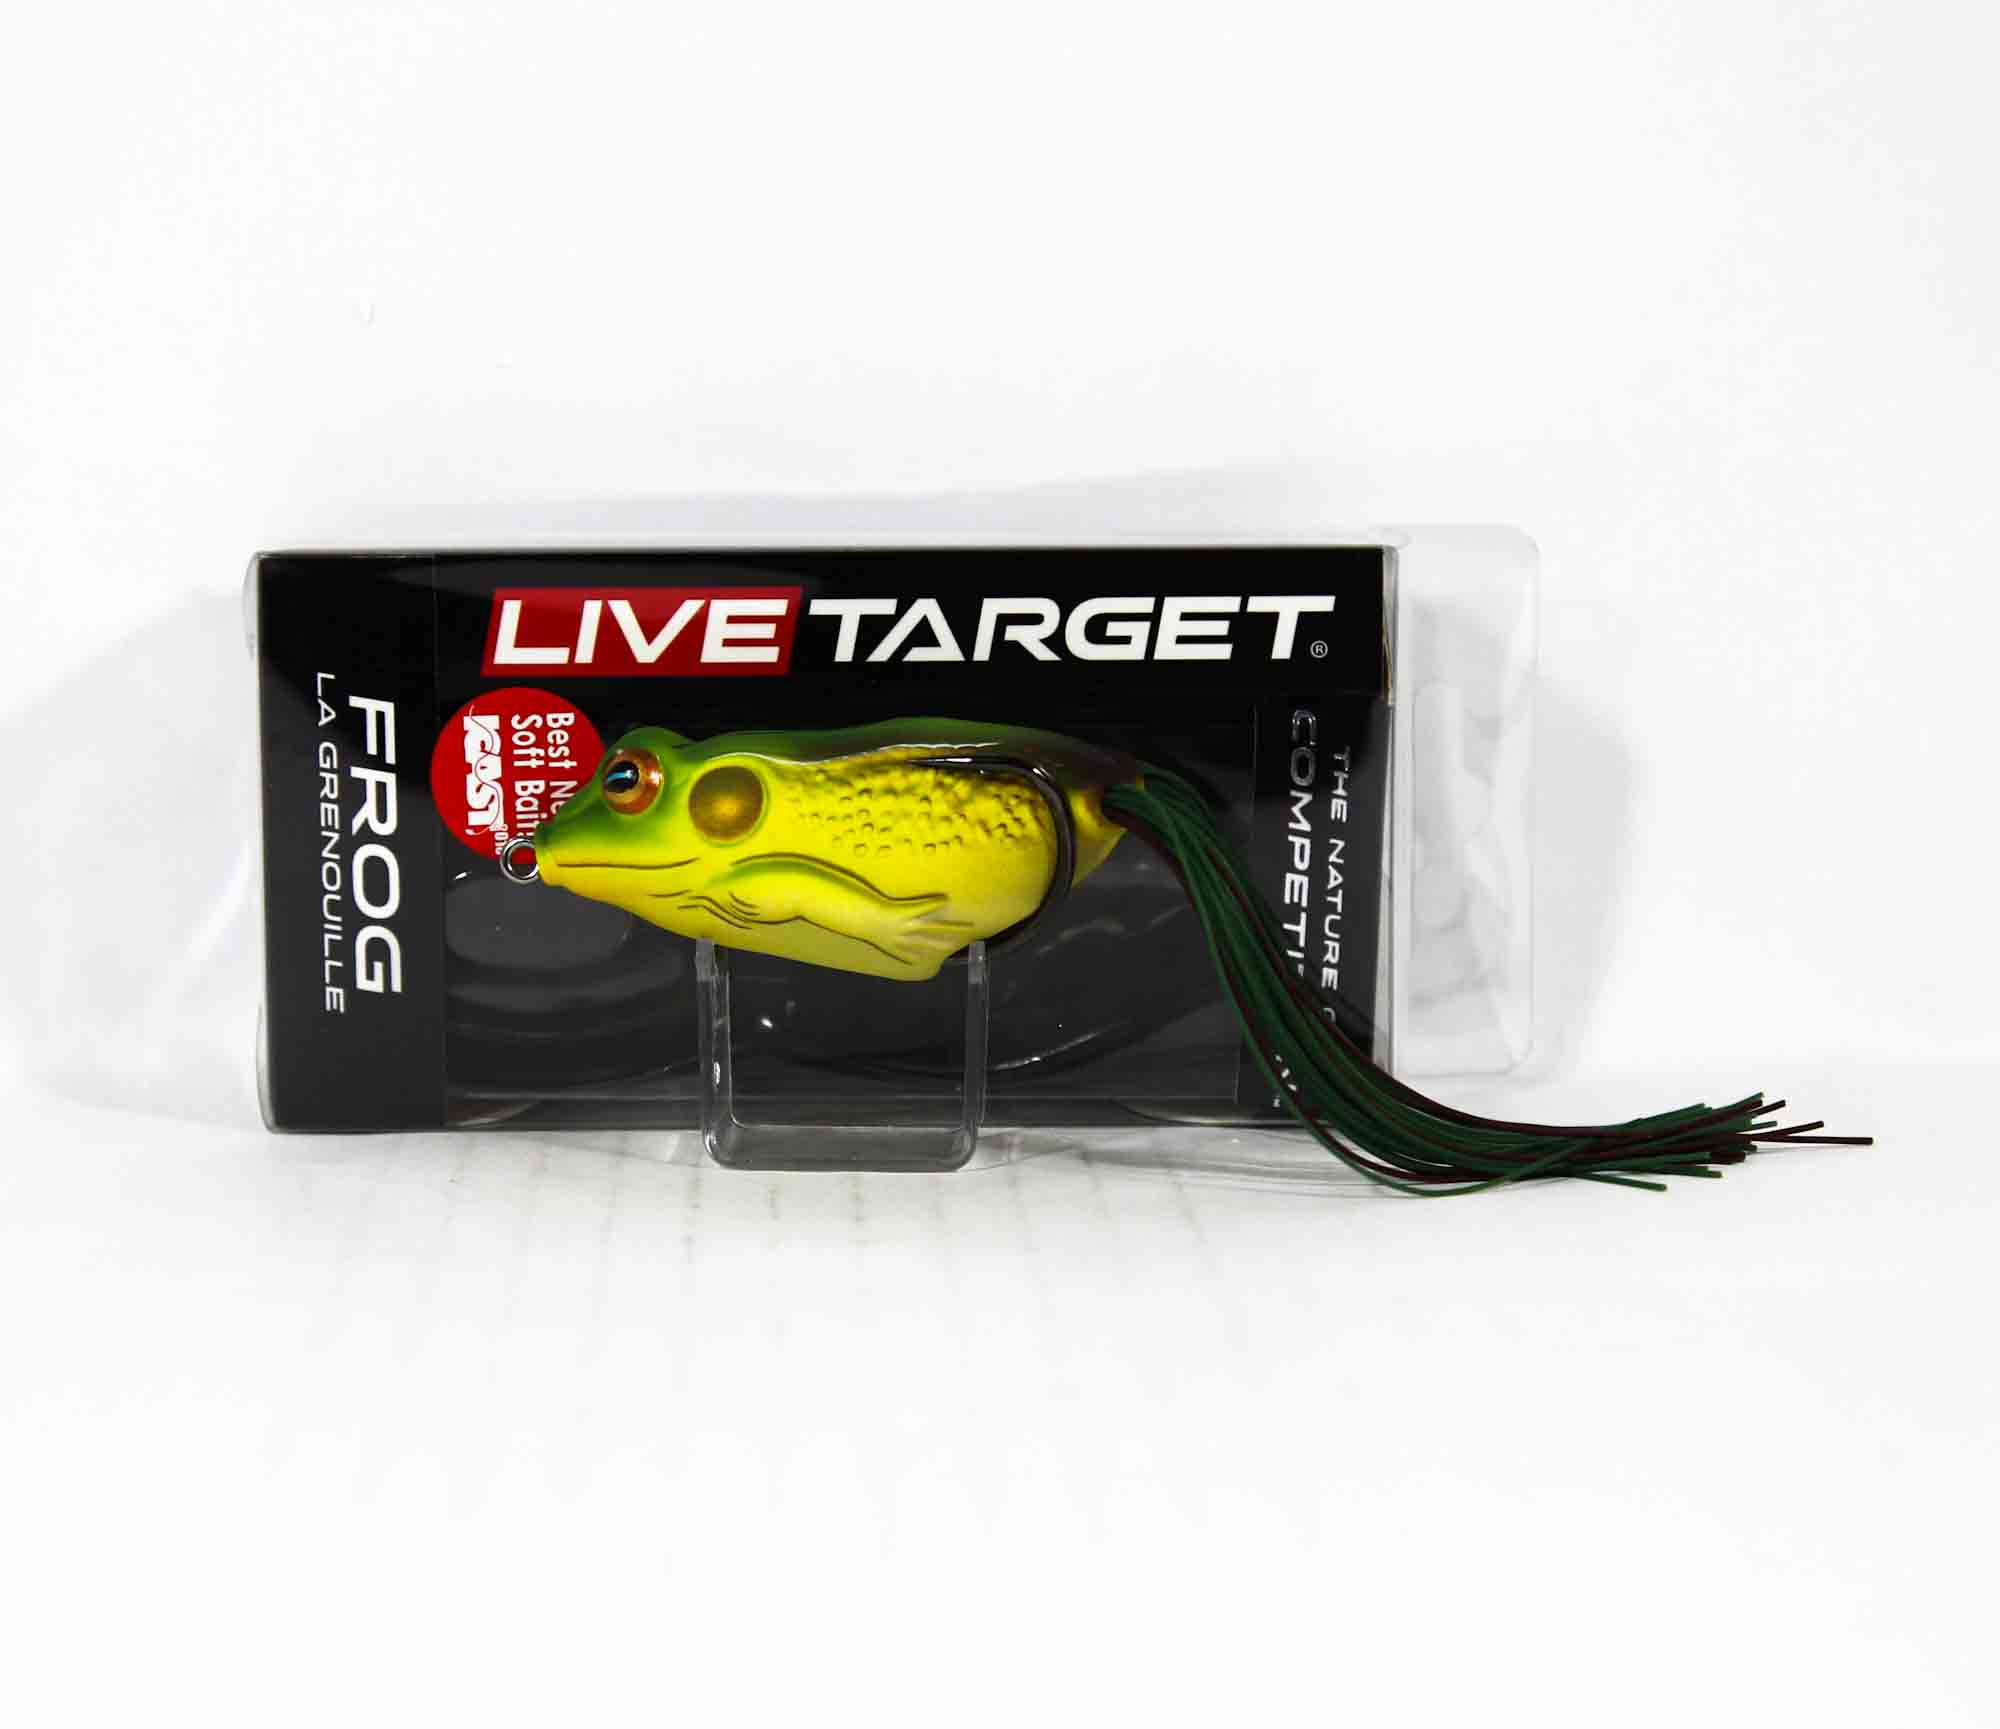 Live Target FGH65T508 Frog Walking Bait 2.75 Inch Green Brown (0411)